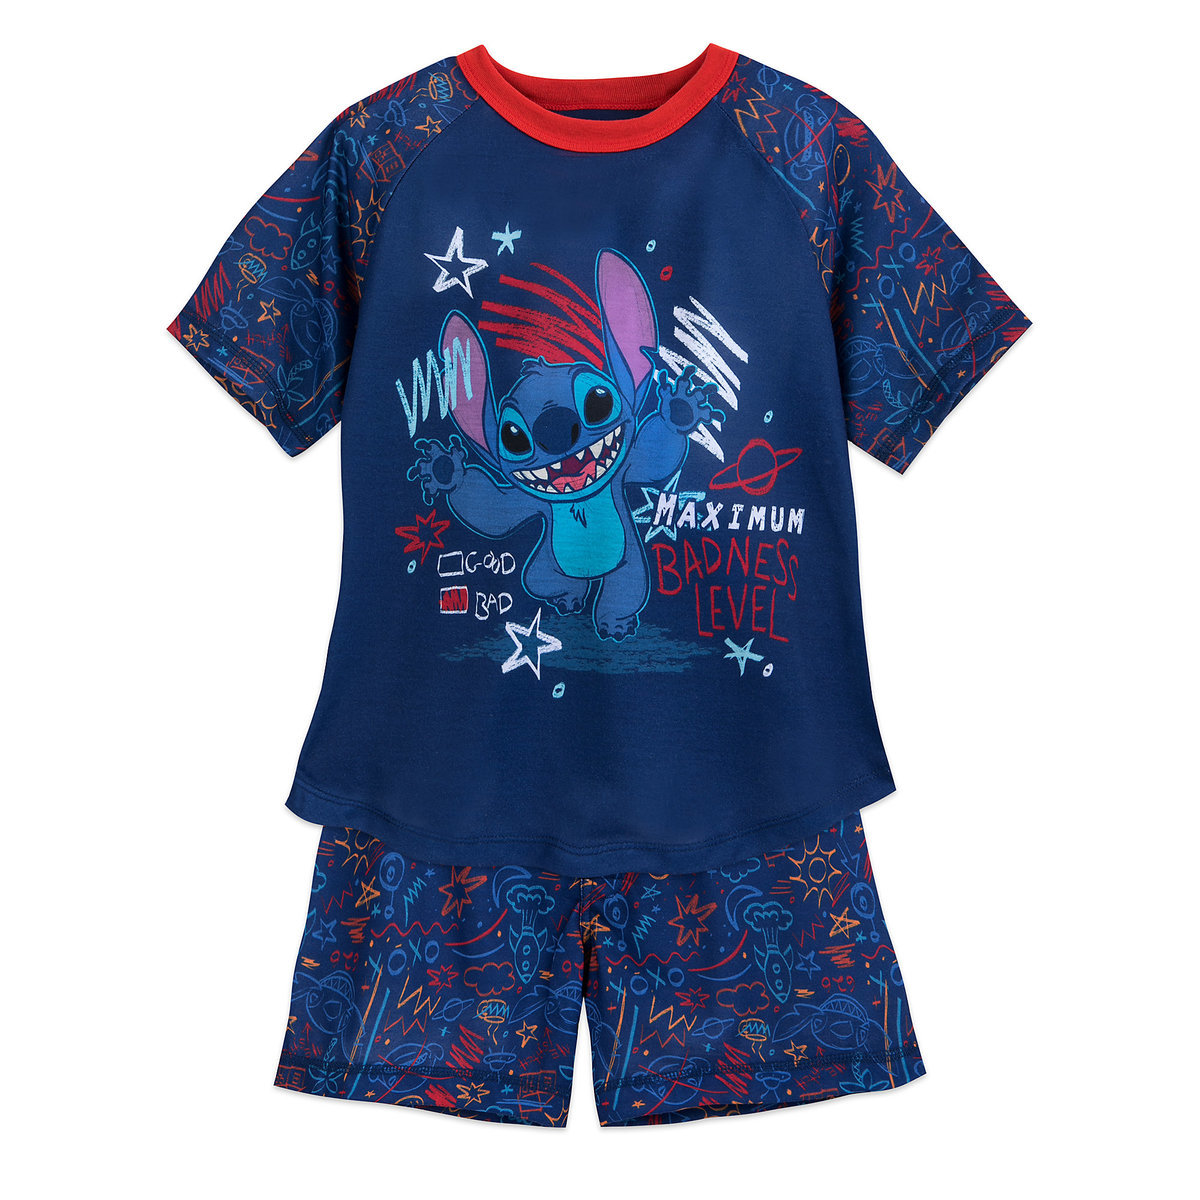 Disney Boy's Sleep Set - Stitch Maximum Badness Shorts Sleep Set